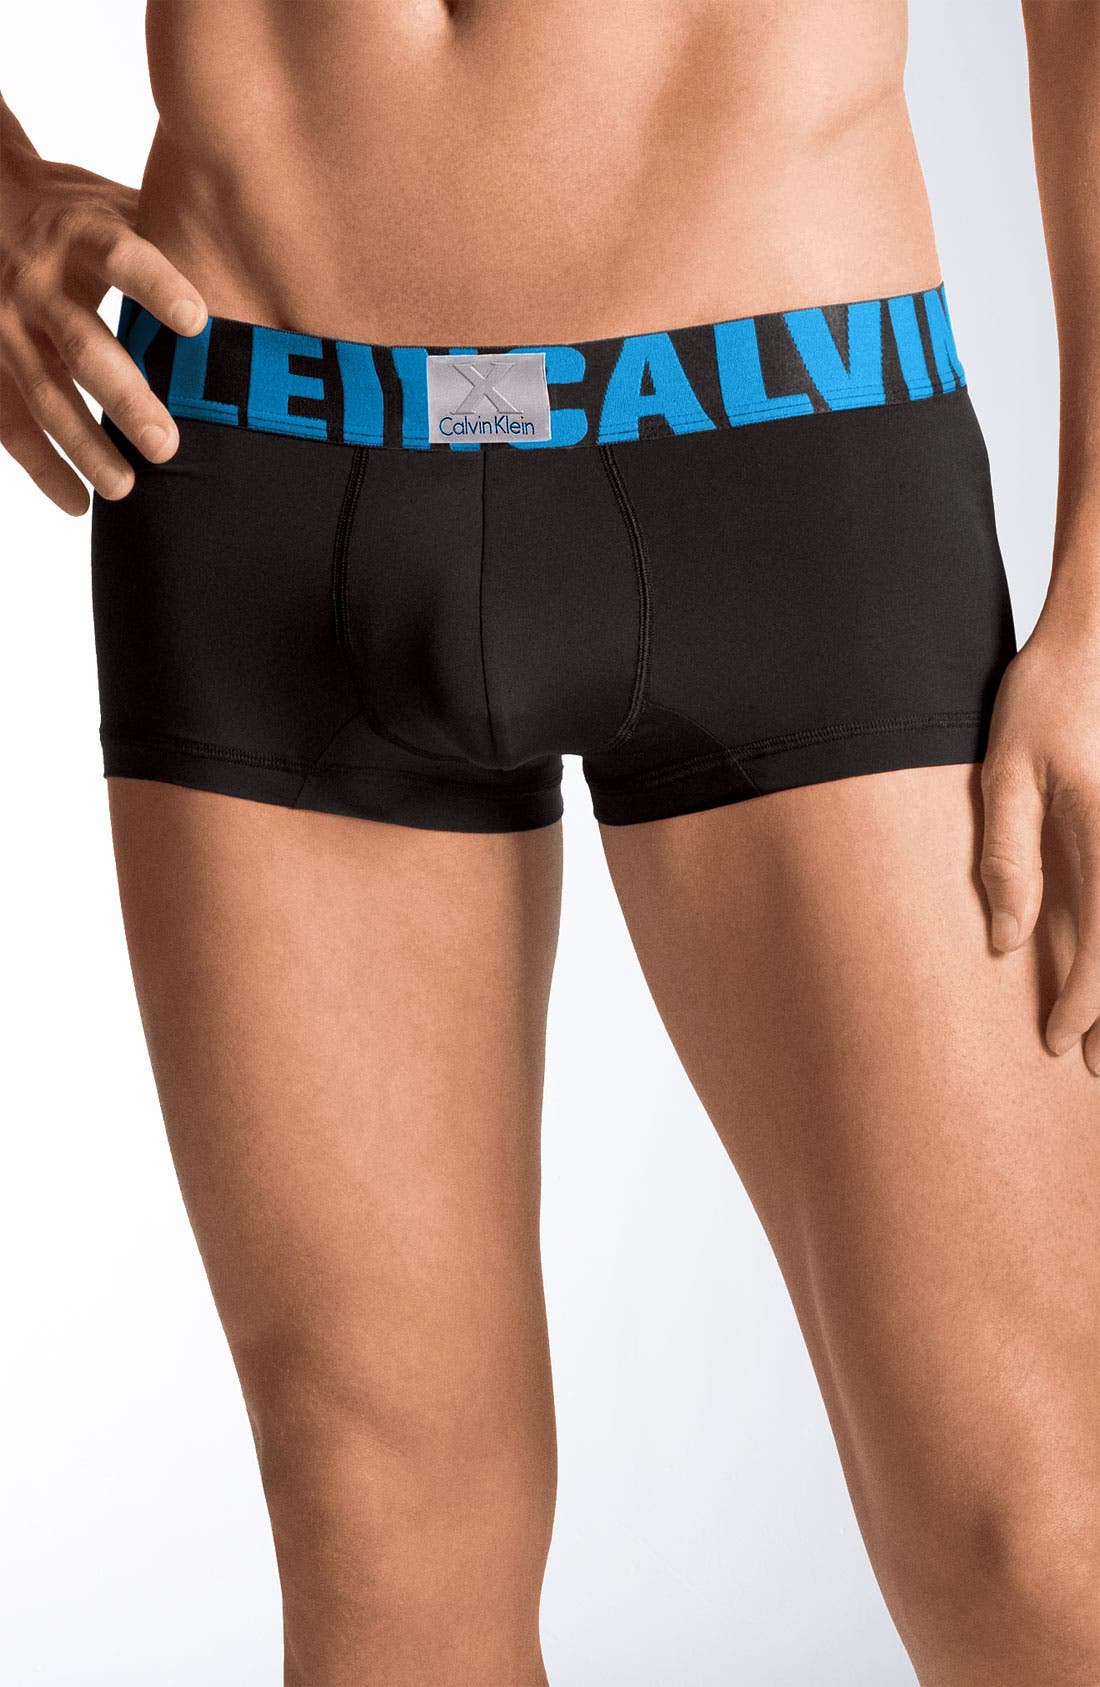 Main Image - Calvin Klein 'X' Stretch Cotton Boxer Briefs